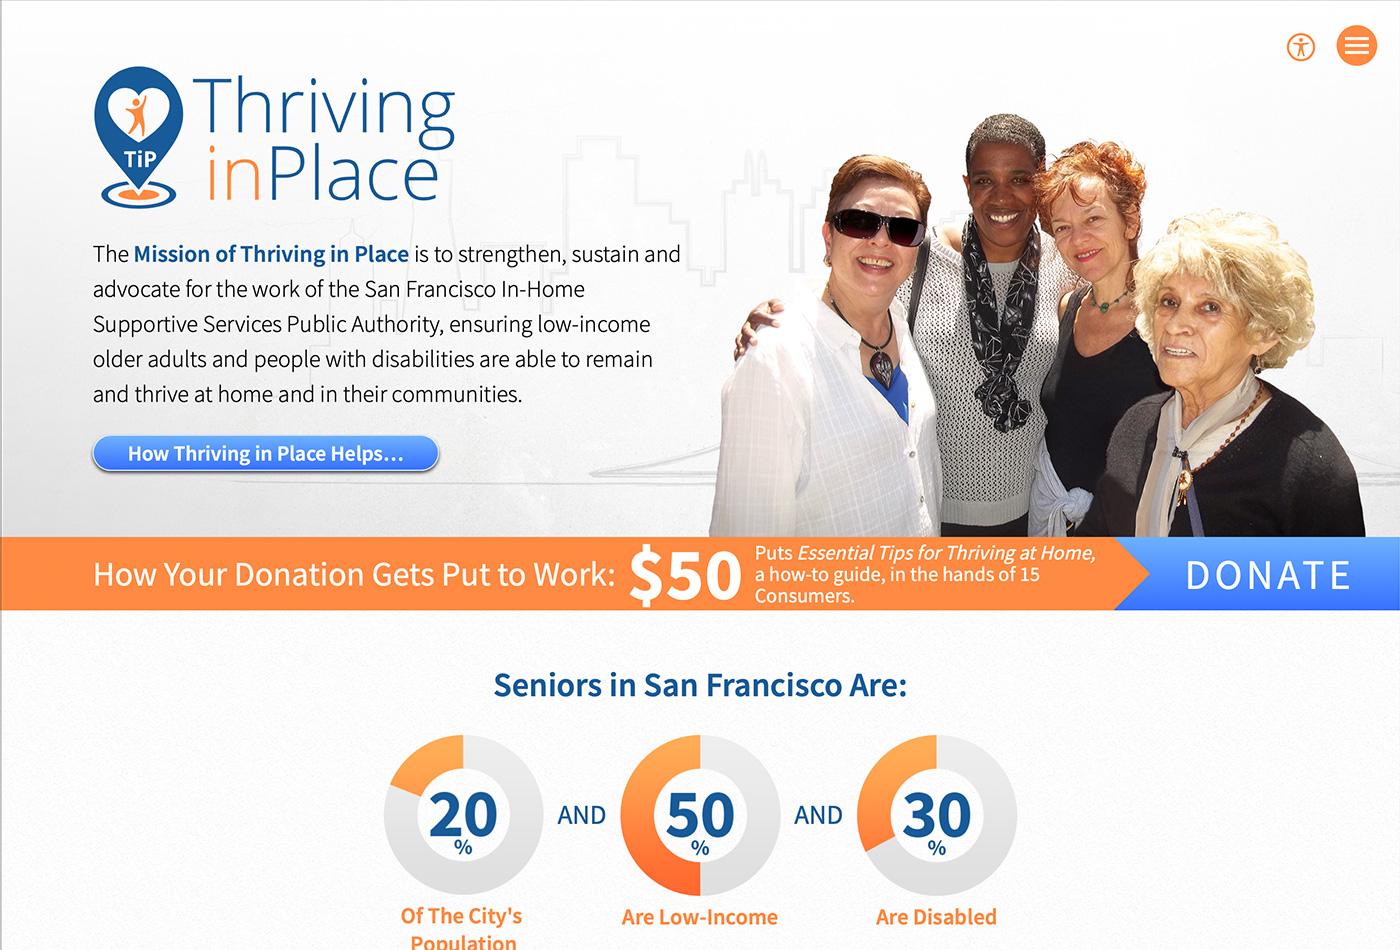 Screenshot of the Thriving in Place website.